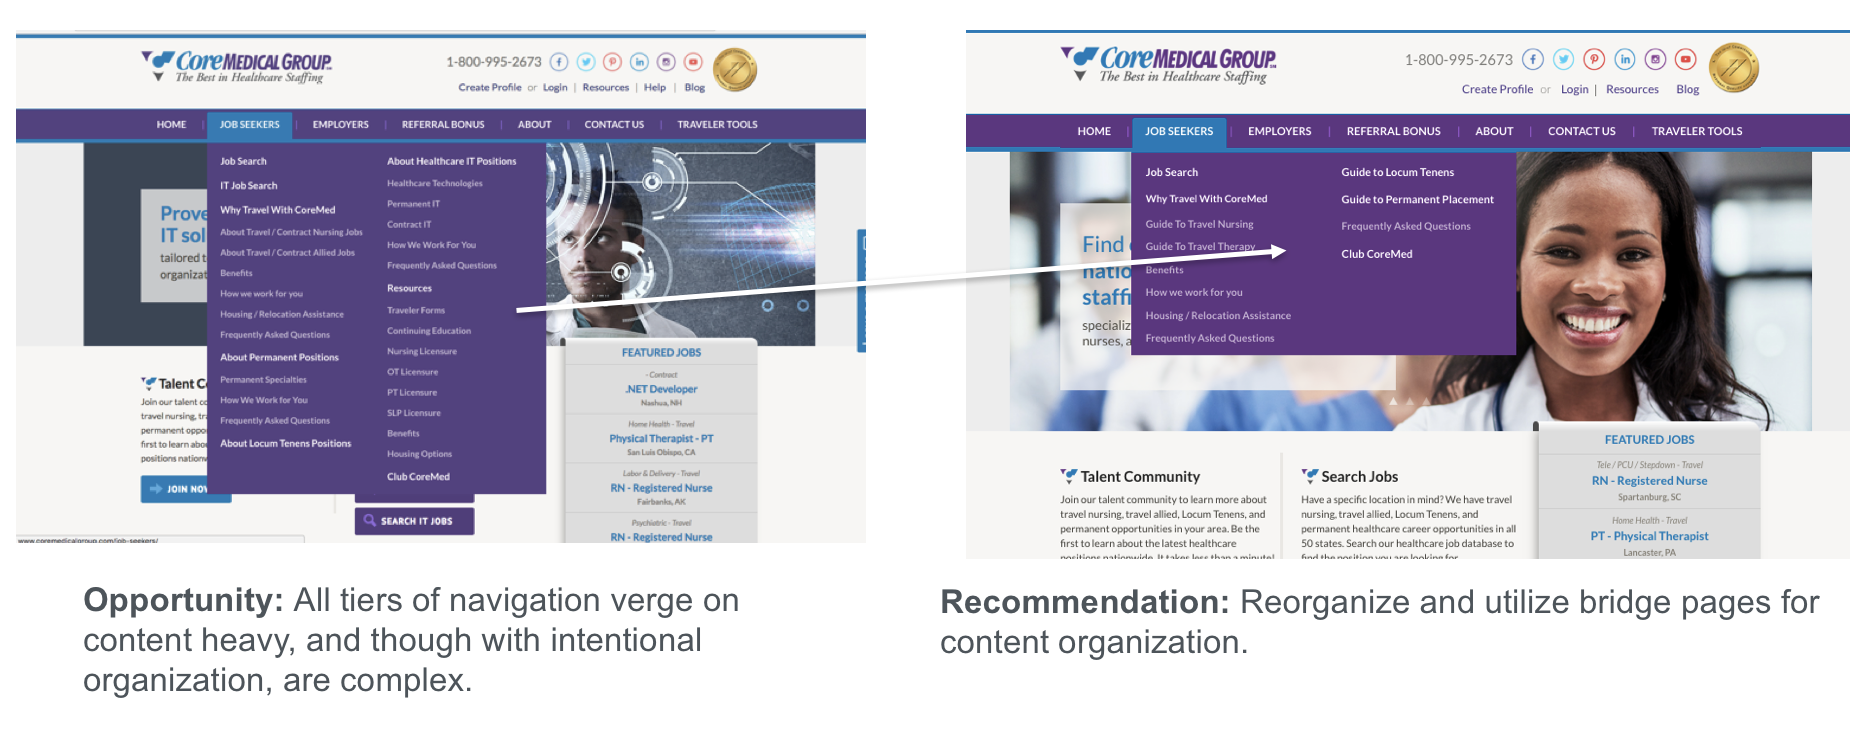 Core Medical Group Website Marketing